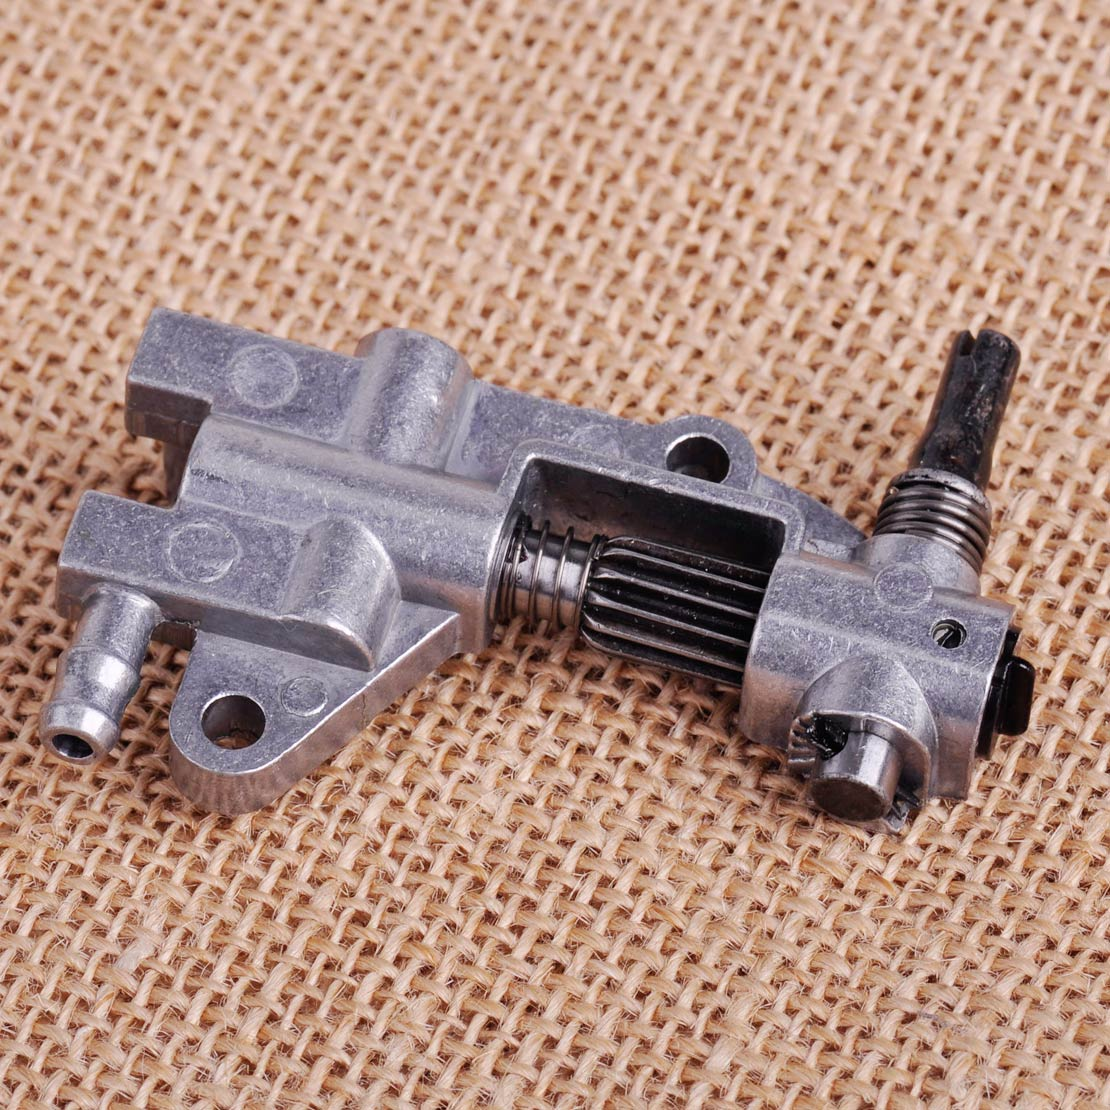 LETAOSK New Oil Pump Replacement Fit For Chinese Chainsaw 4500 5200 5800 45CC 52CC 58CC